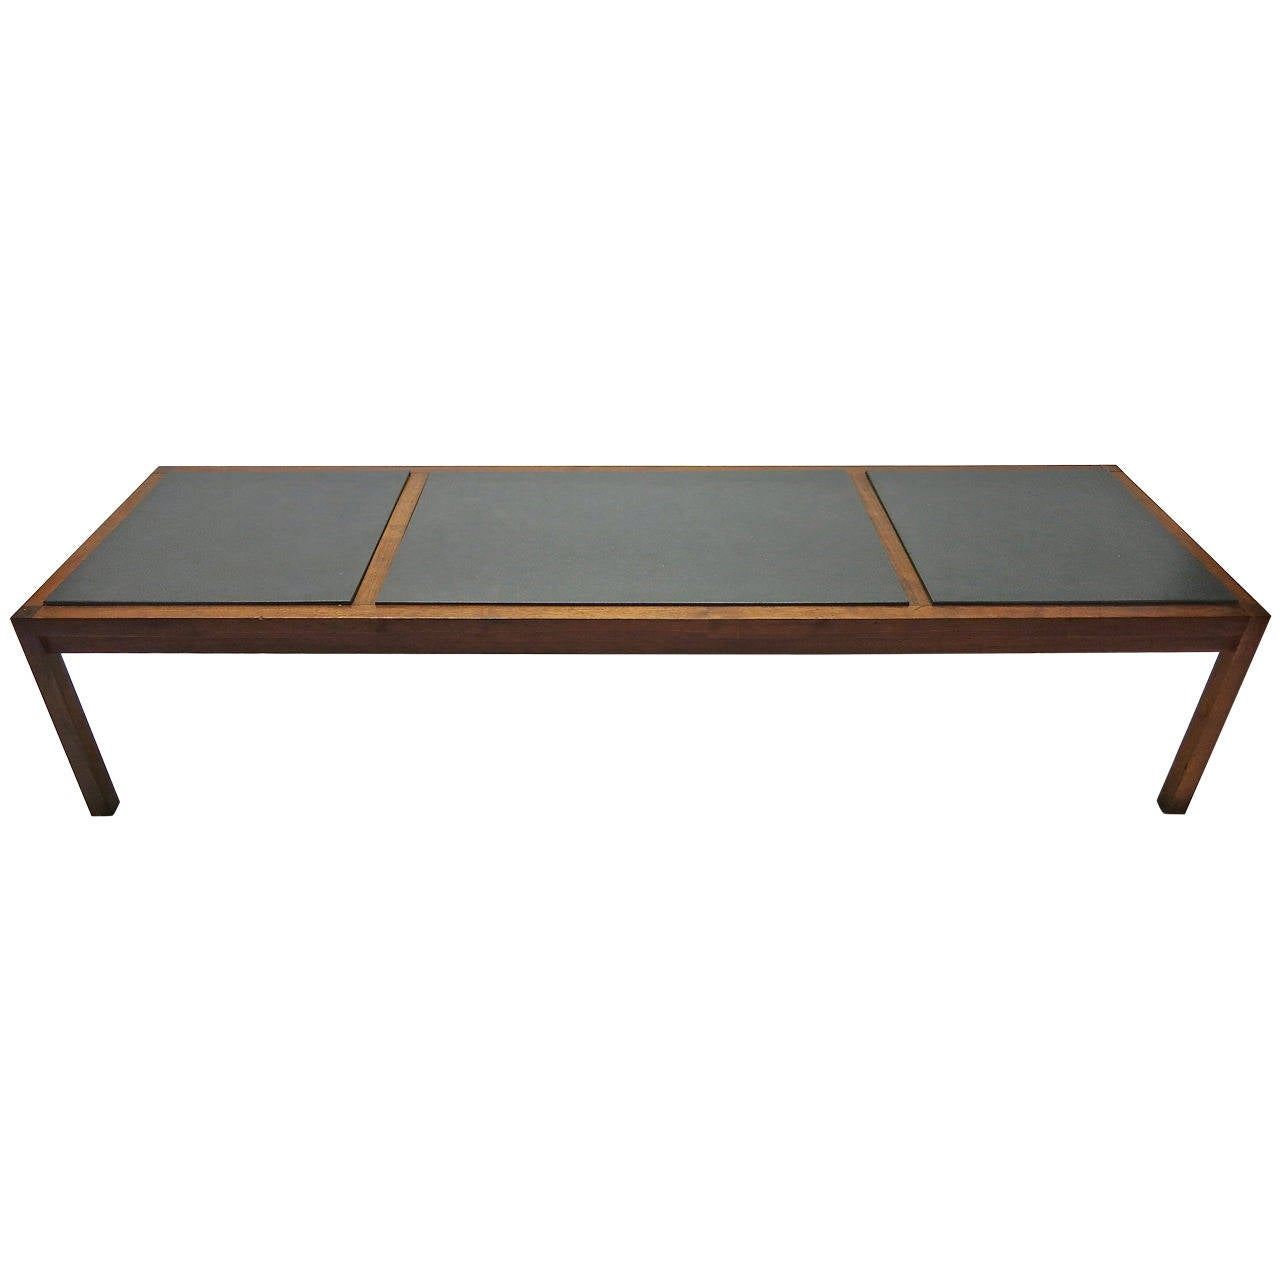 Coffee Table In The Style Of Harvey Probber America Circa 1945 At 1stdibs